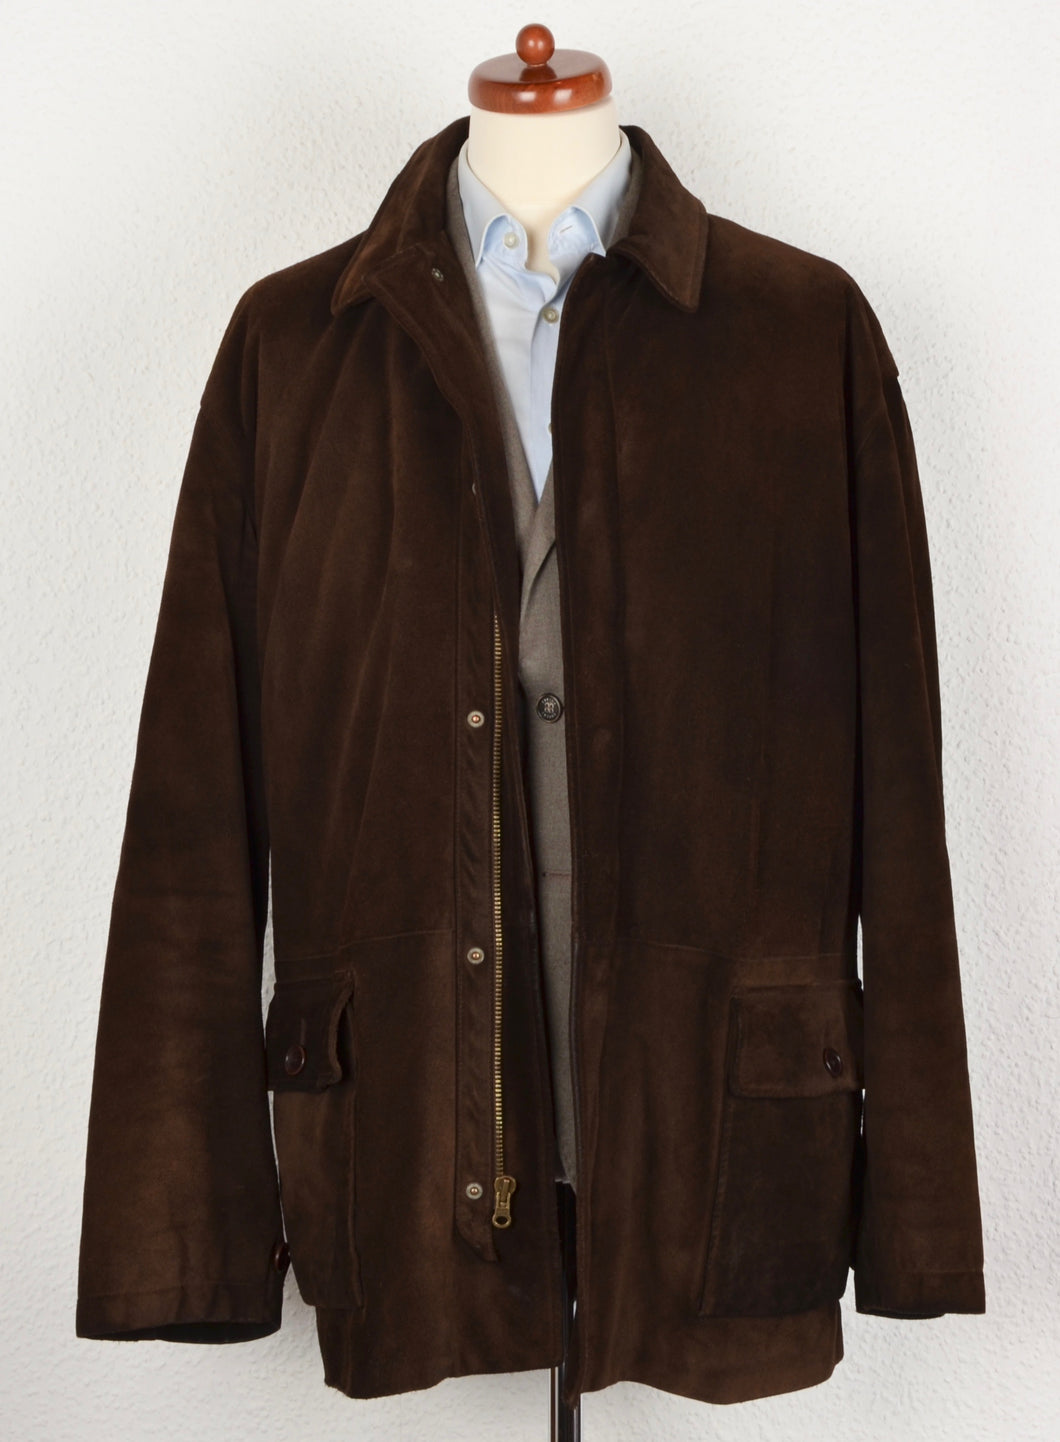 Polo Ralph Lauren Suede Coat Size XL - Chocolate Brown